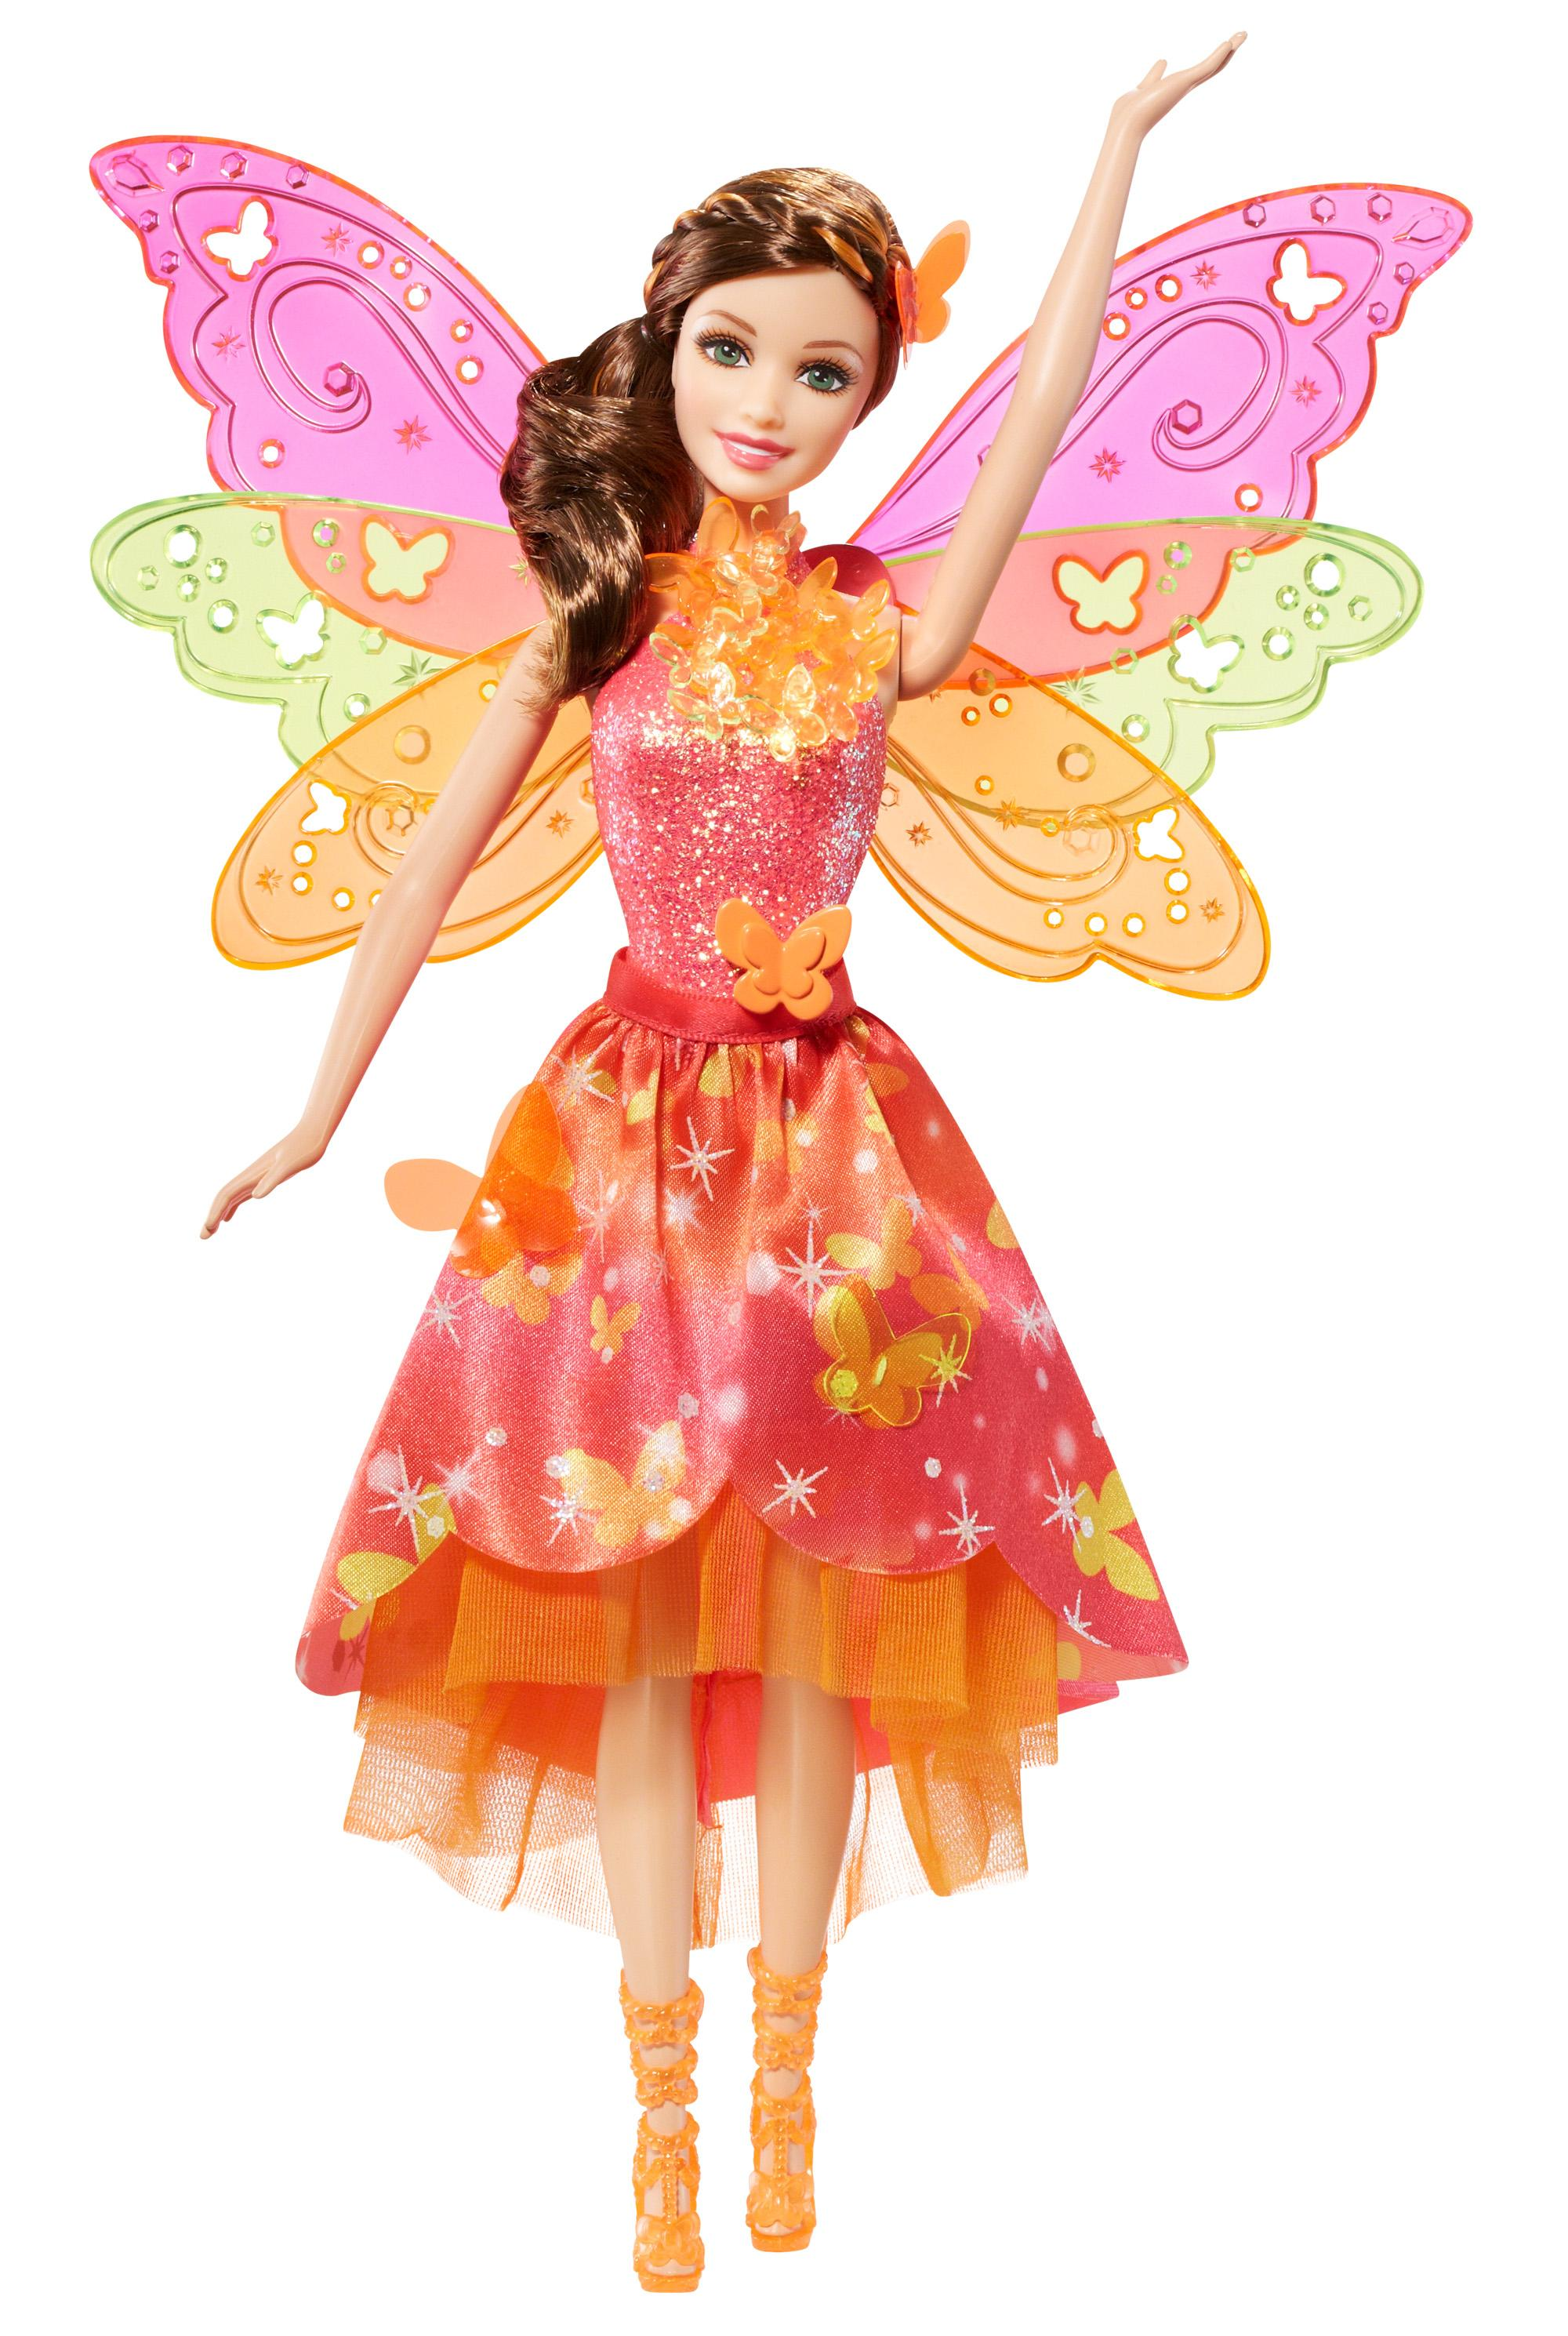 Barbie clipart wing wallpaper And Door From in manufacturer